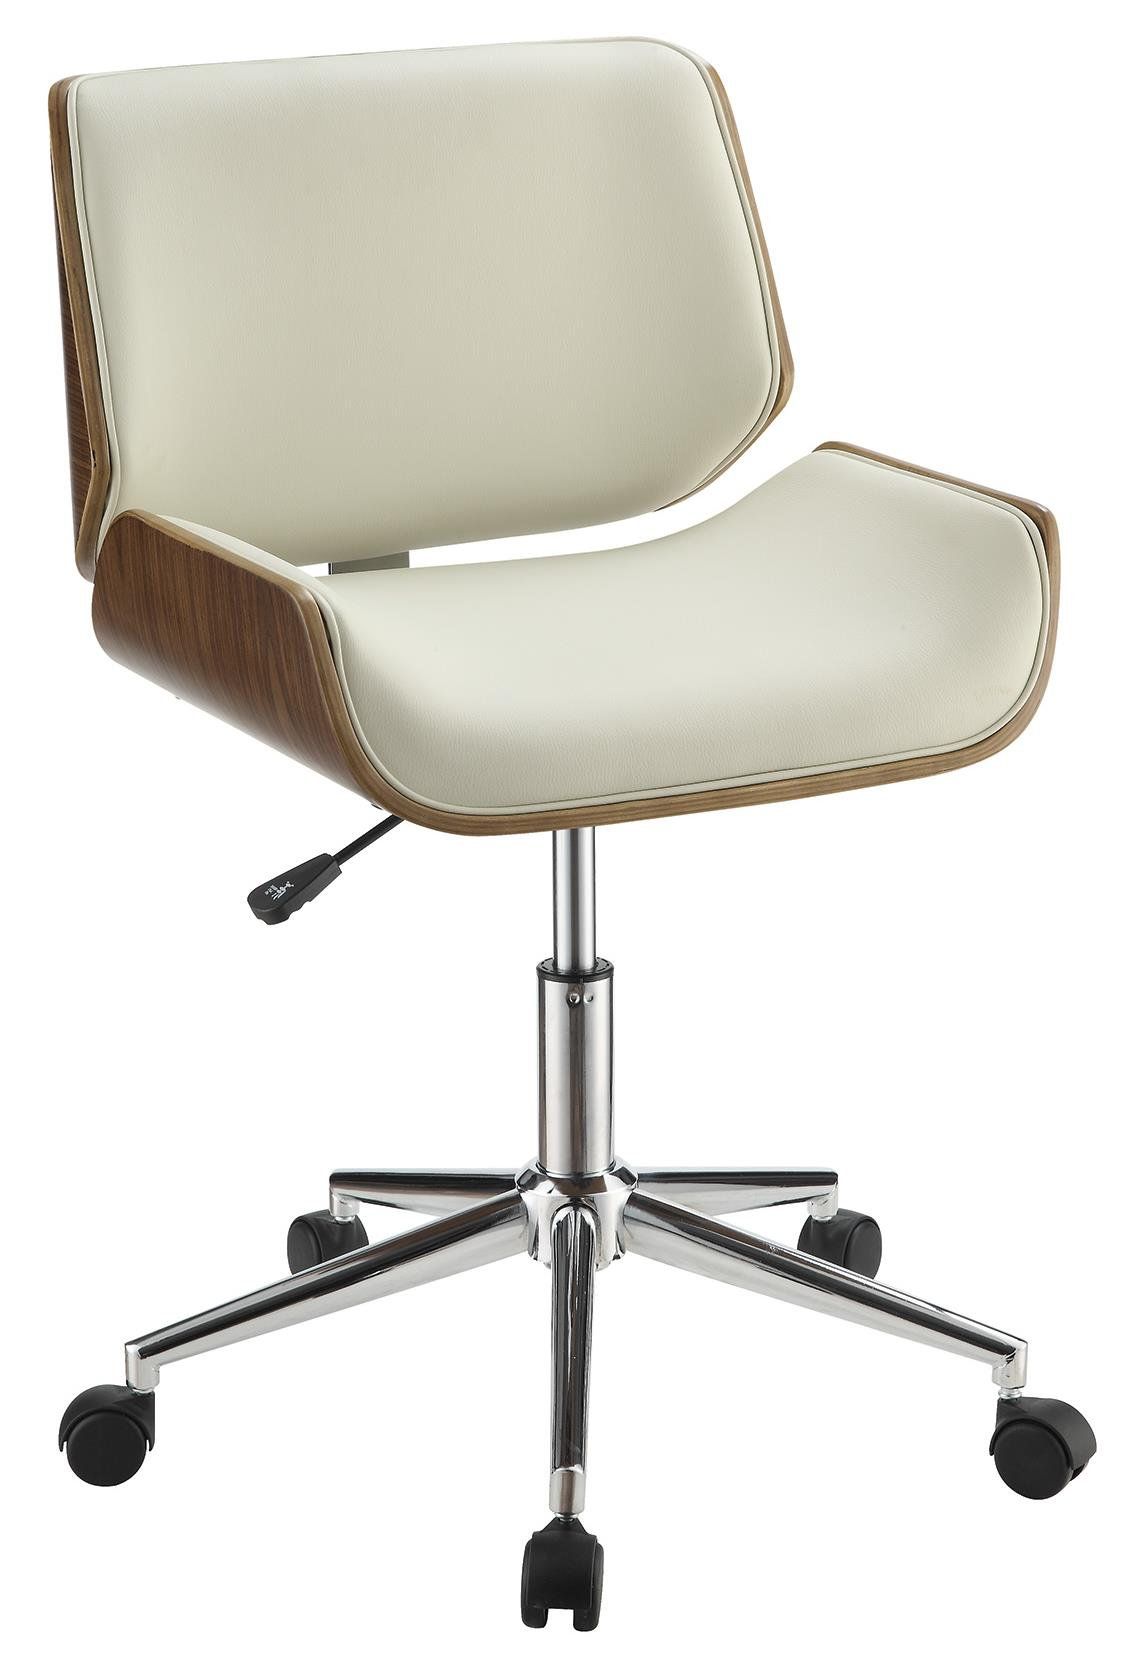 Office Chairs Office Chair by Coaster at Northeast Factory Direct